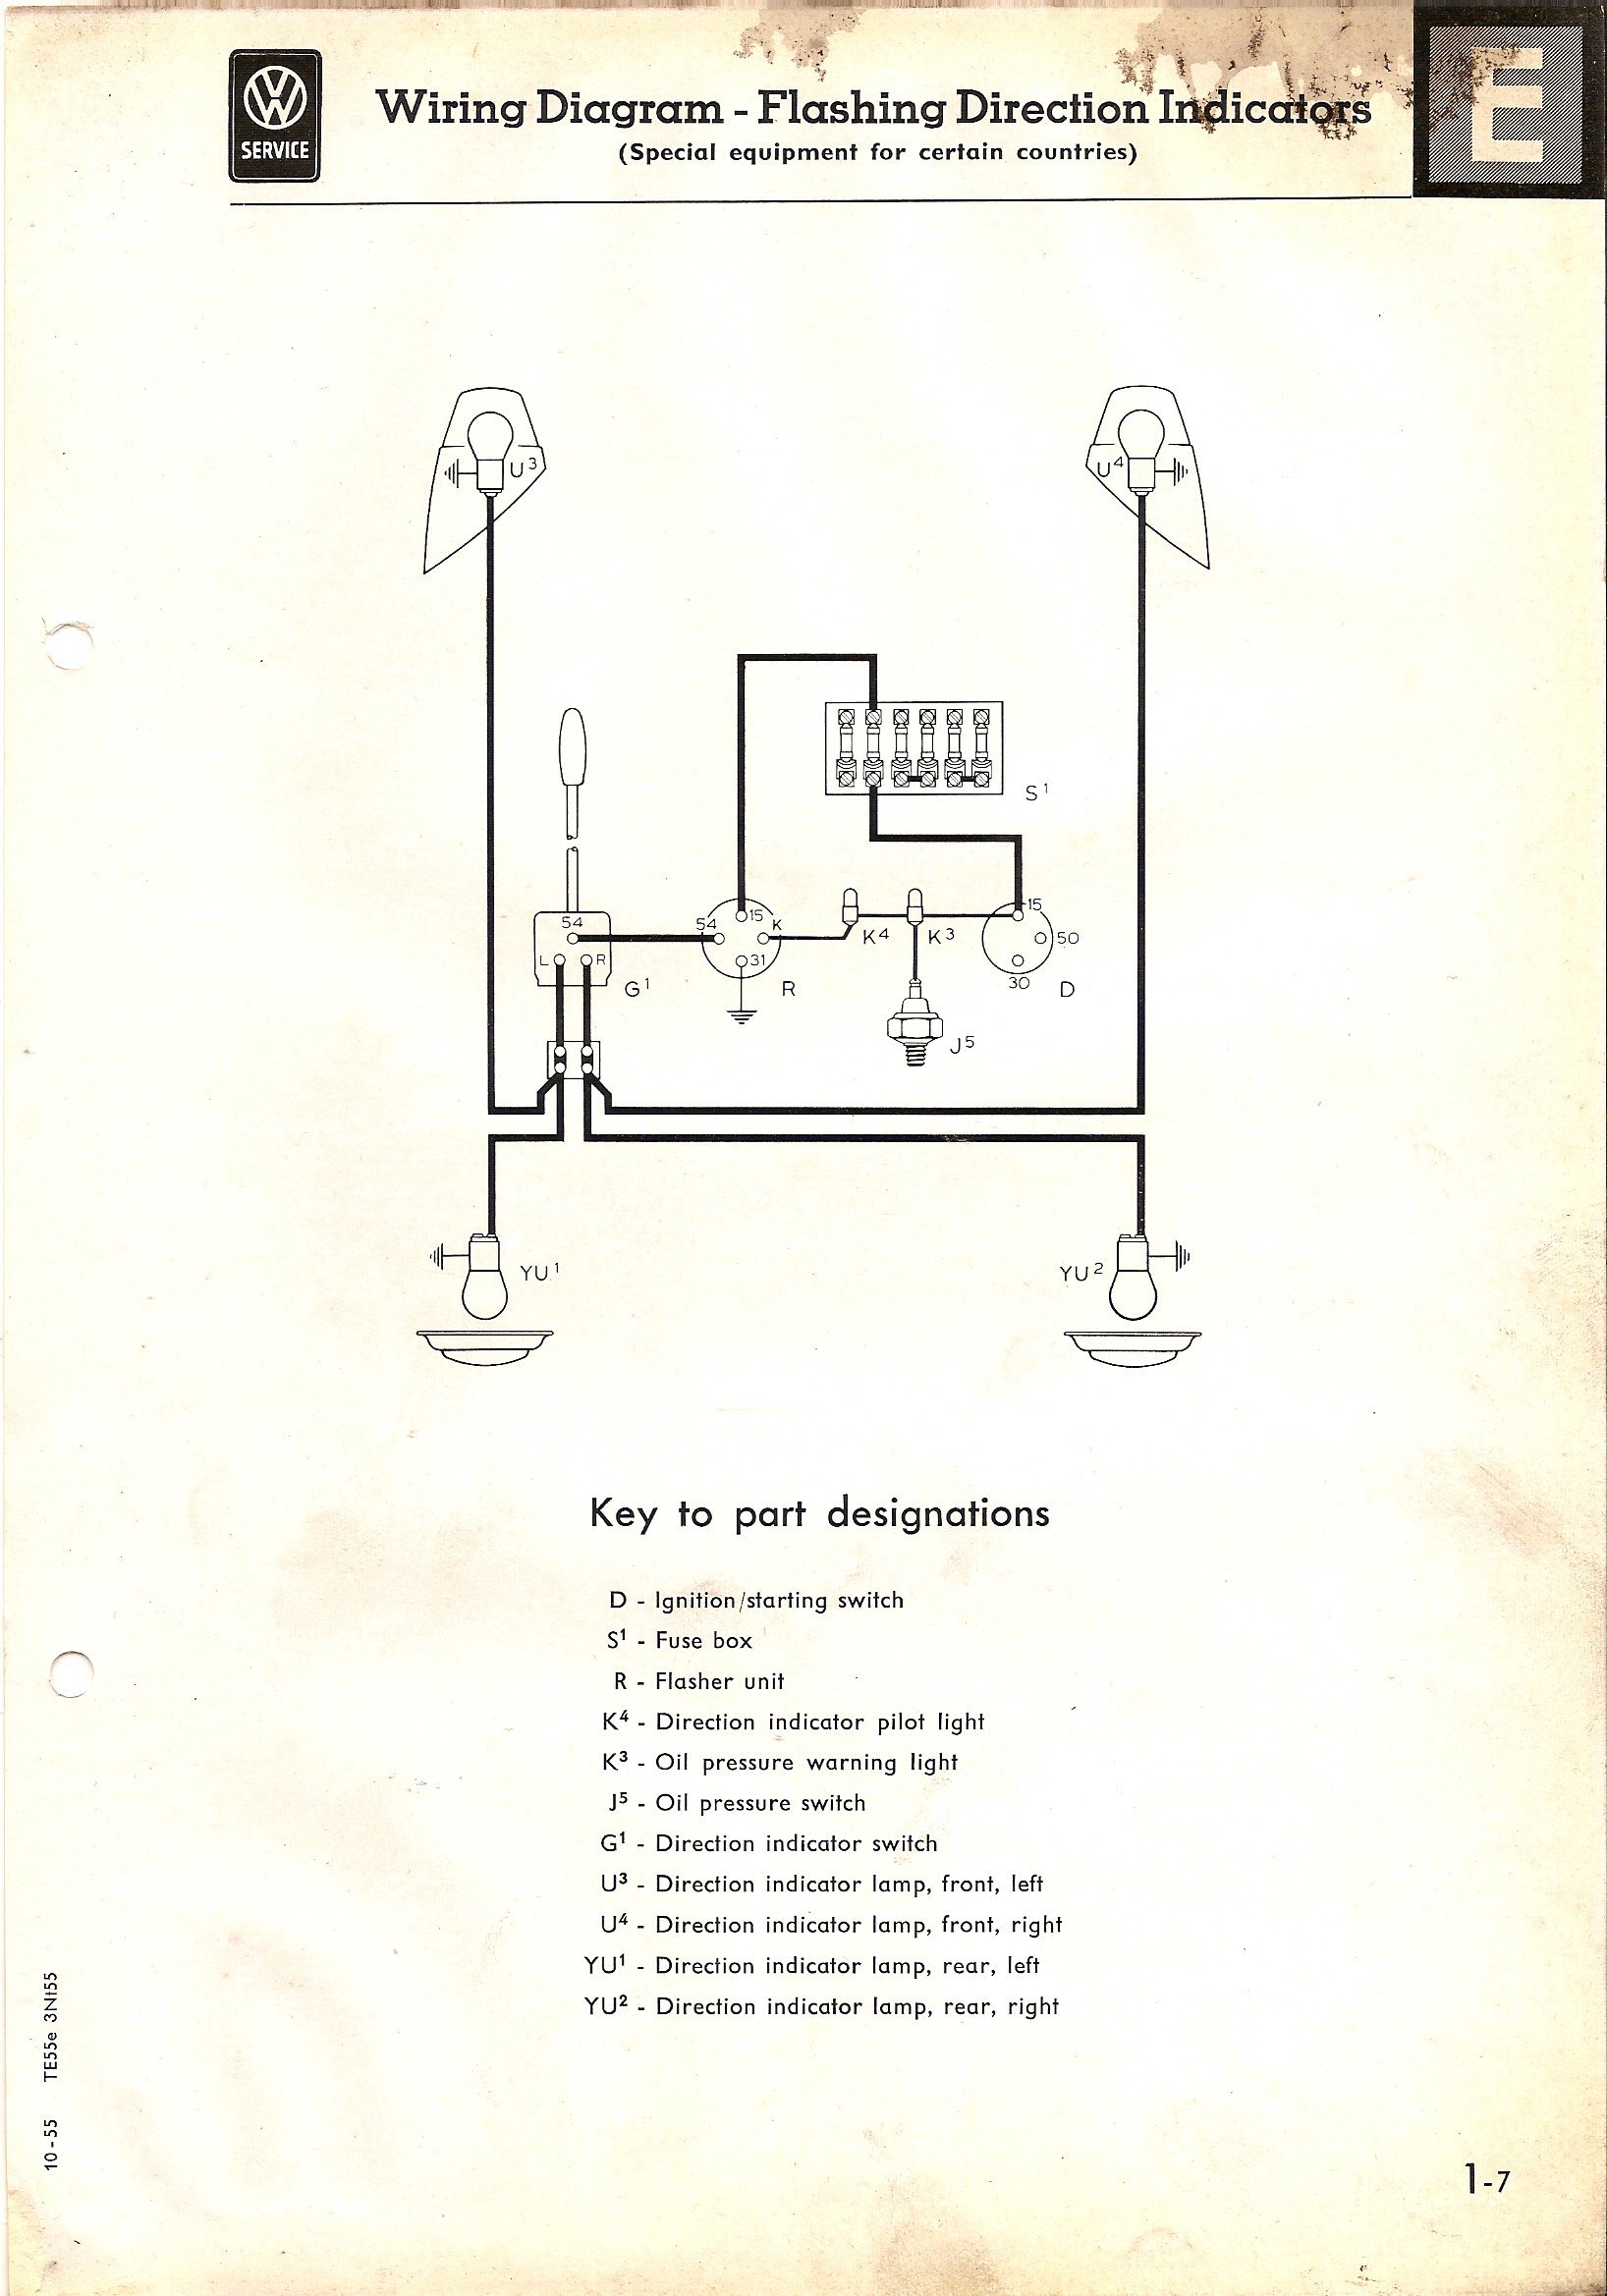 Midget Wiring Diagram | Wiring Diagram 2019 on mg midget repair manual, mg midget suspension, mg midget oil pump, mg midget firing order, mg midget heater, mg td wiring diagram, mg midget forum, mg midget turn signals, mg midget dash layout, mg midget radio, mg midget tachometer wiring, mg midget charging system, mg midget ignition, mg midget battery, mg midget transmission diagram, mg midget thermostat, 1976 mg midget electrical diagram, mg midget dimensions, mg midget air cleaner, mg midget oil filter,